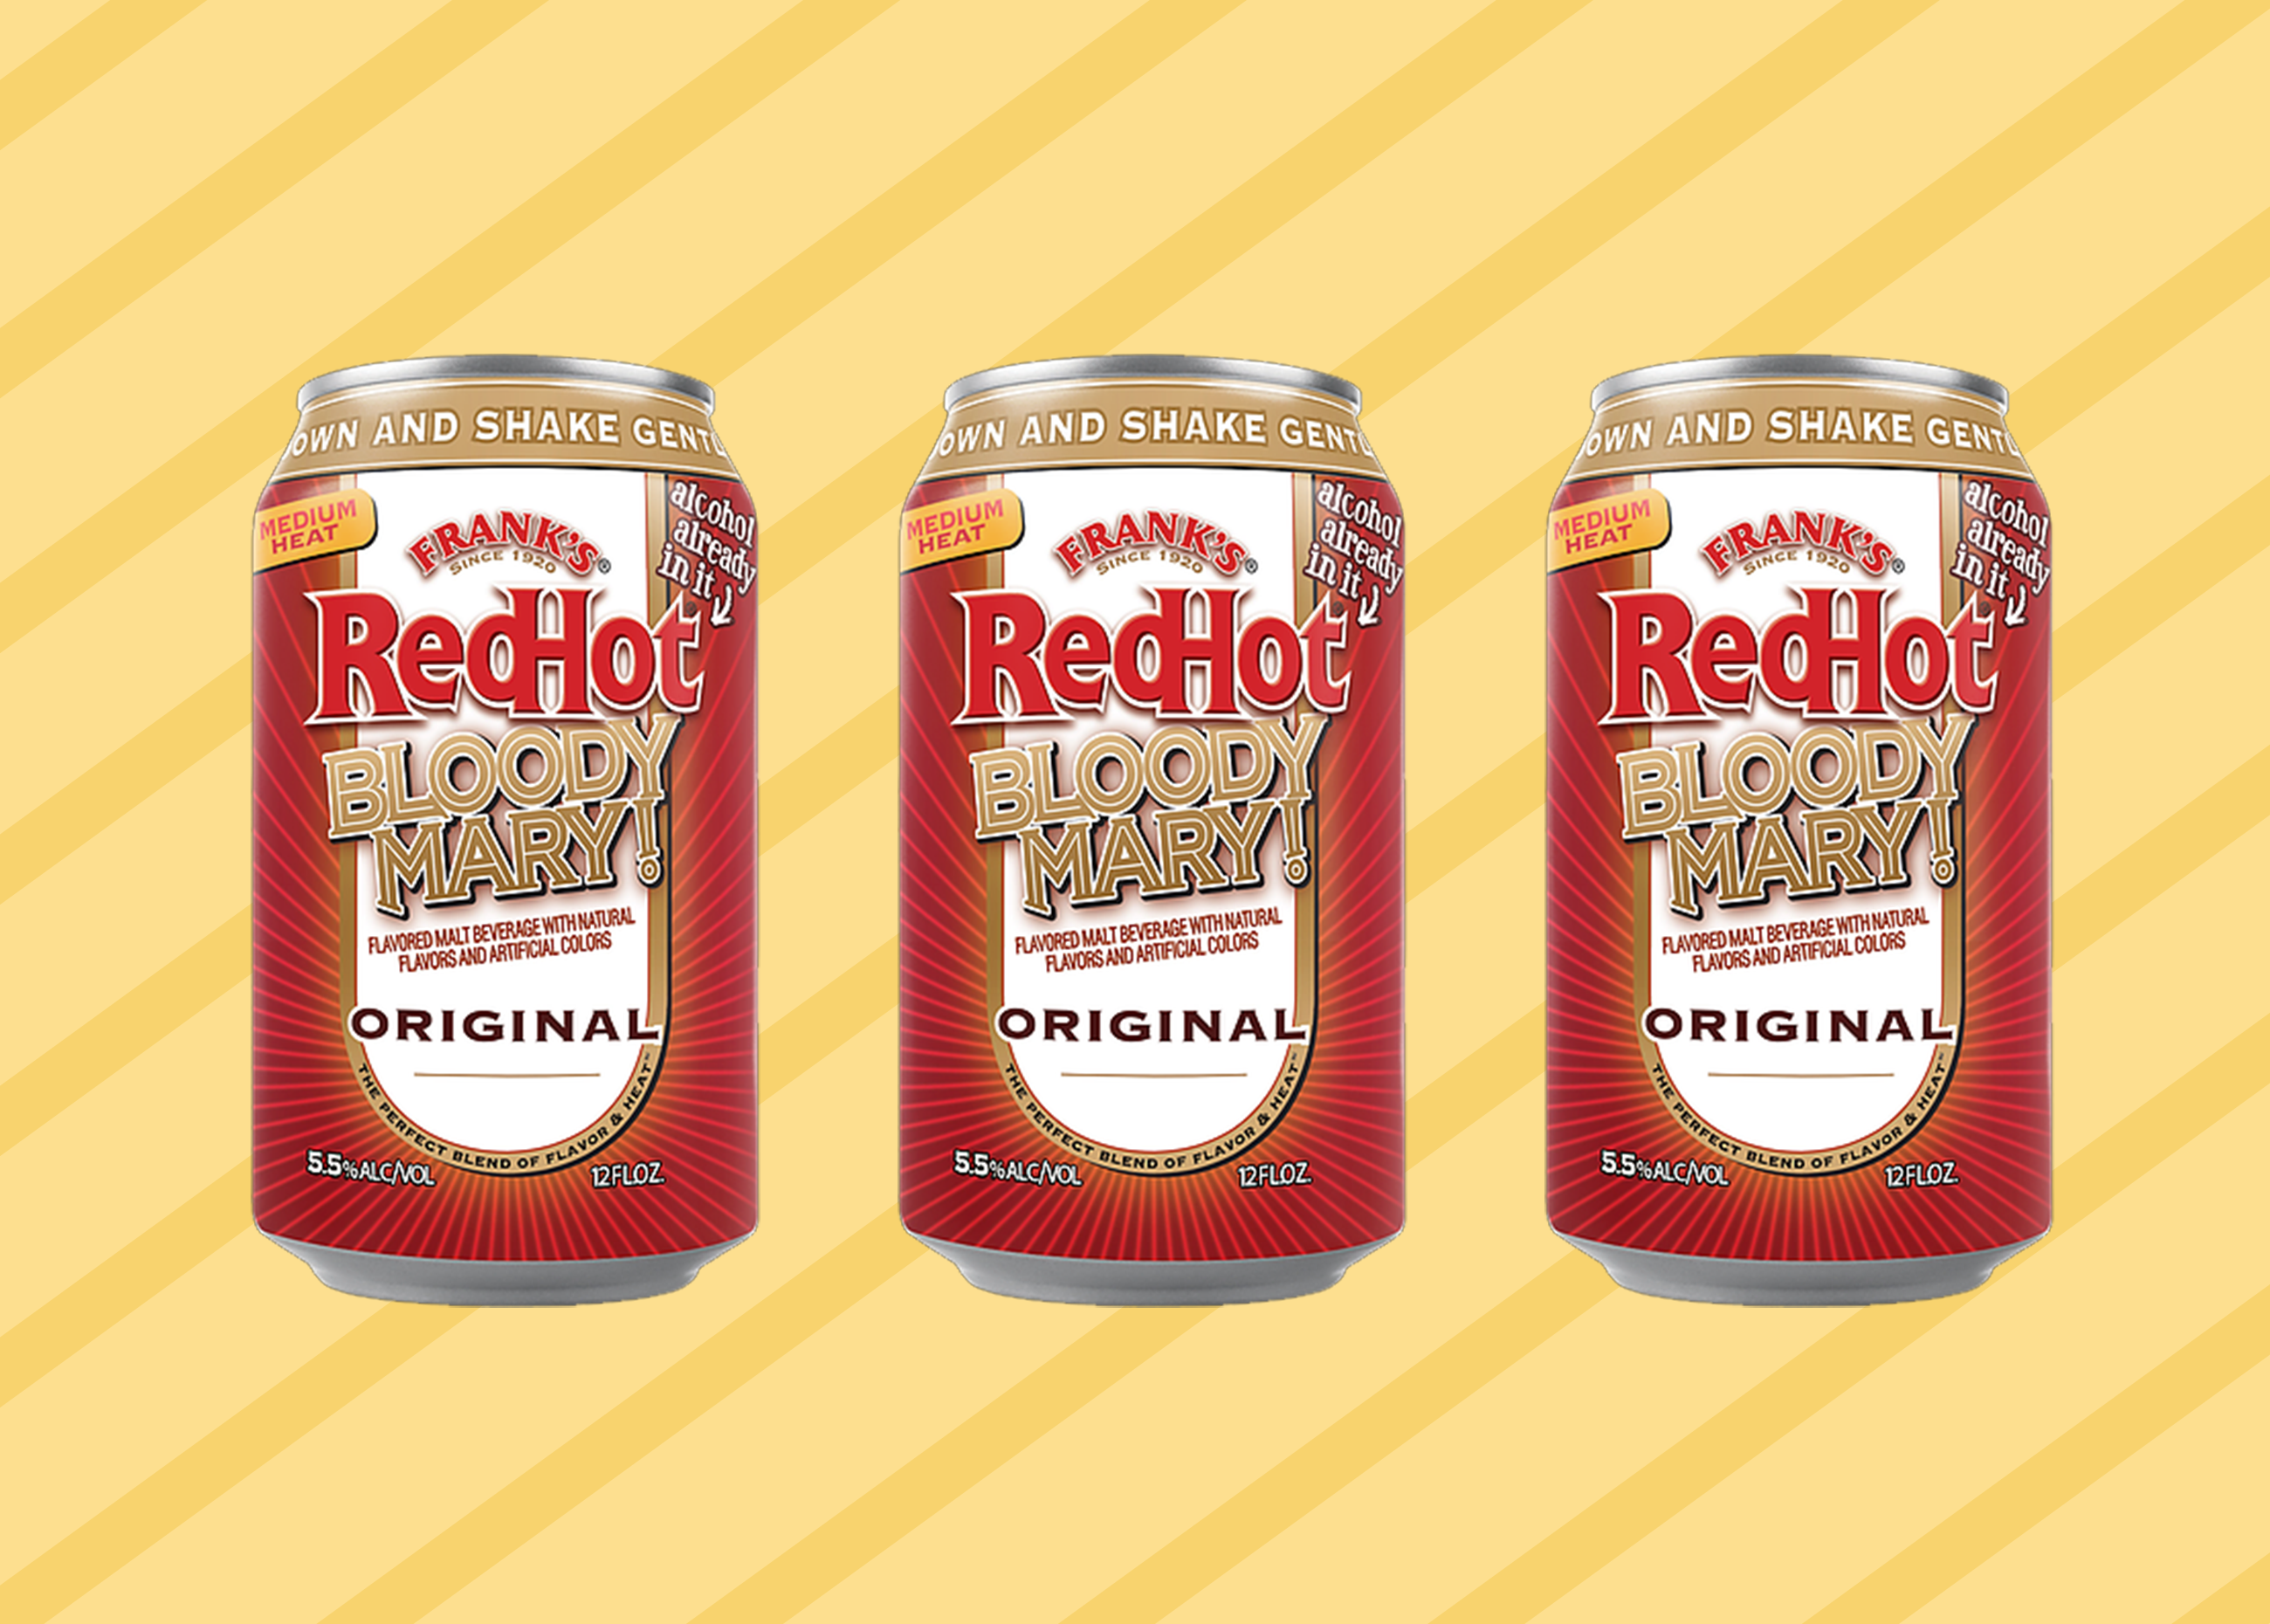 Franks RedHot Bloody Mary in a Can